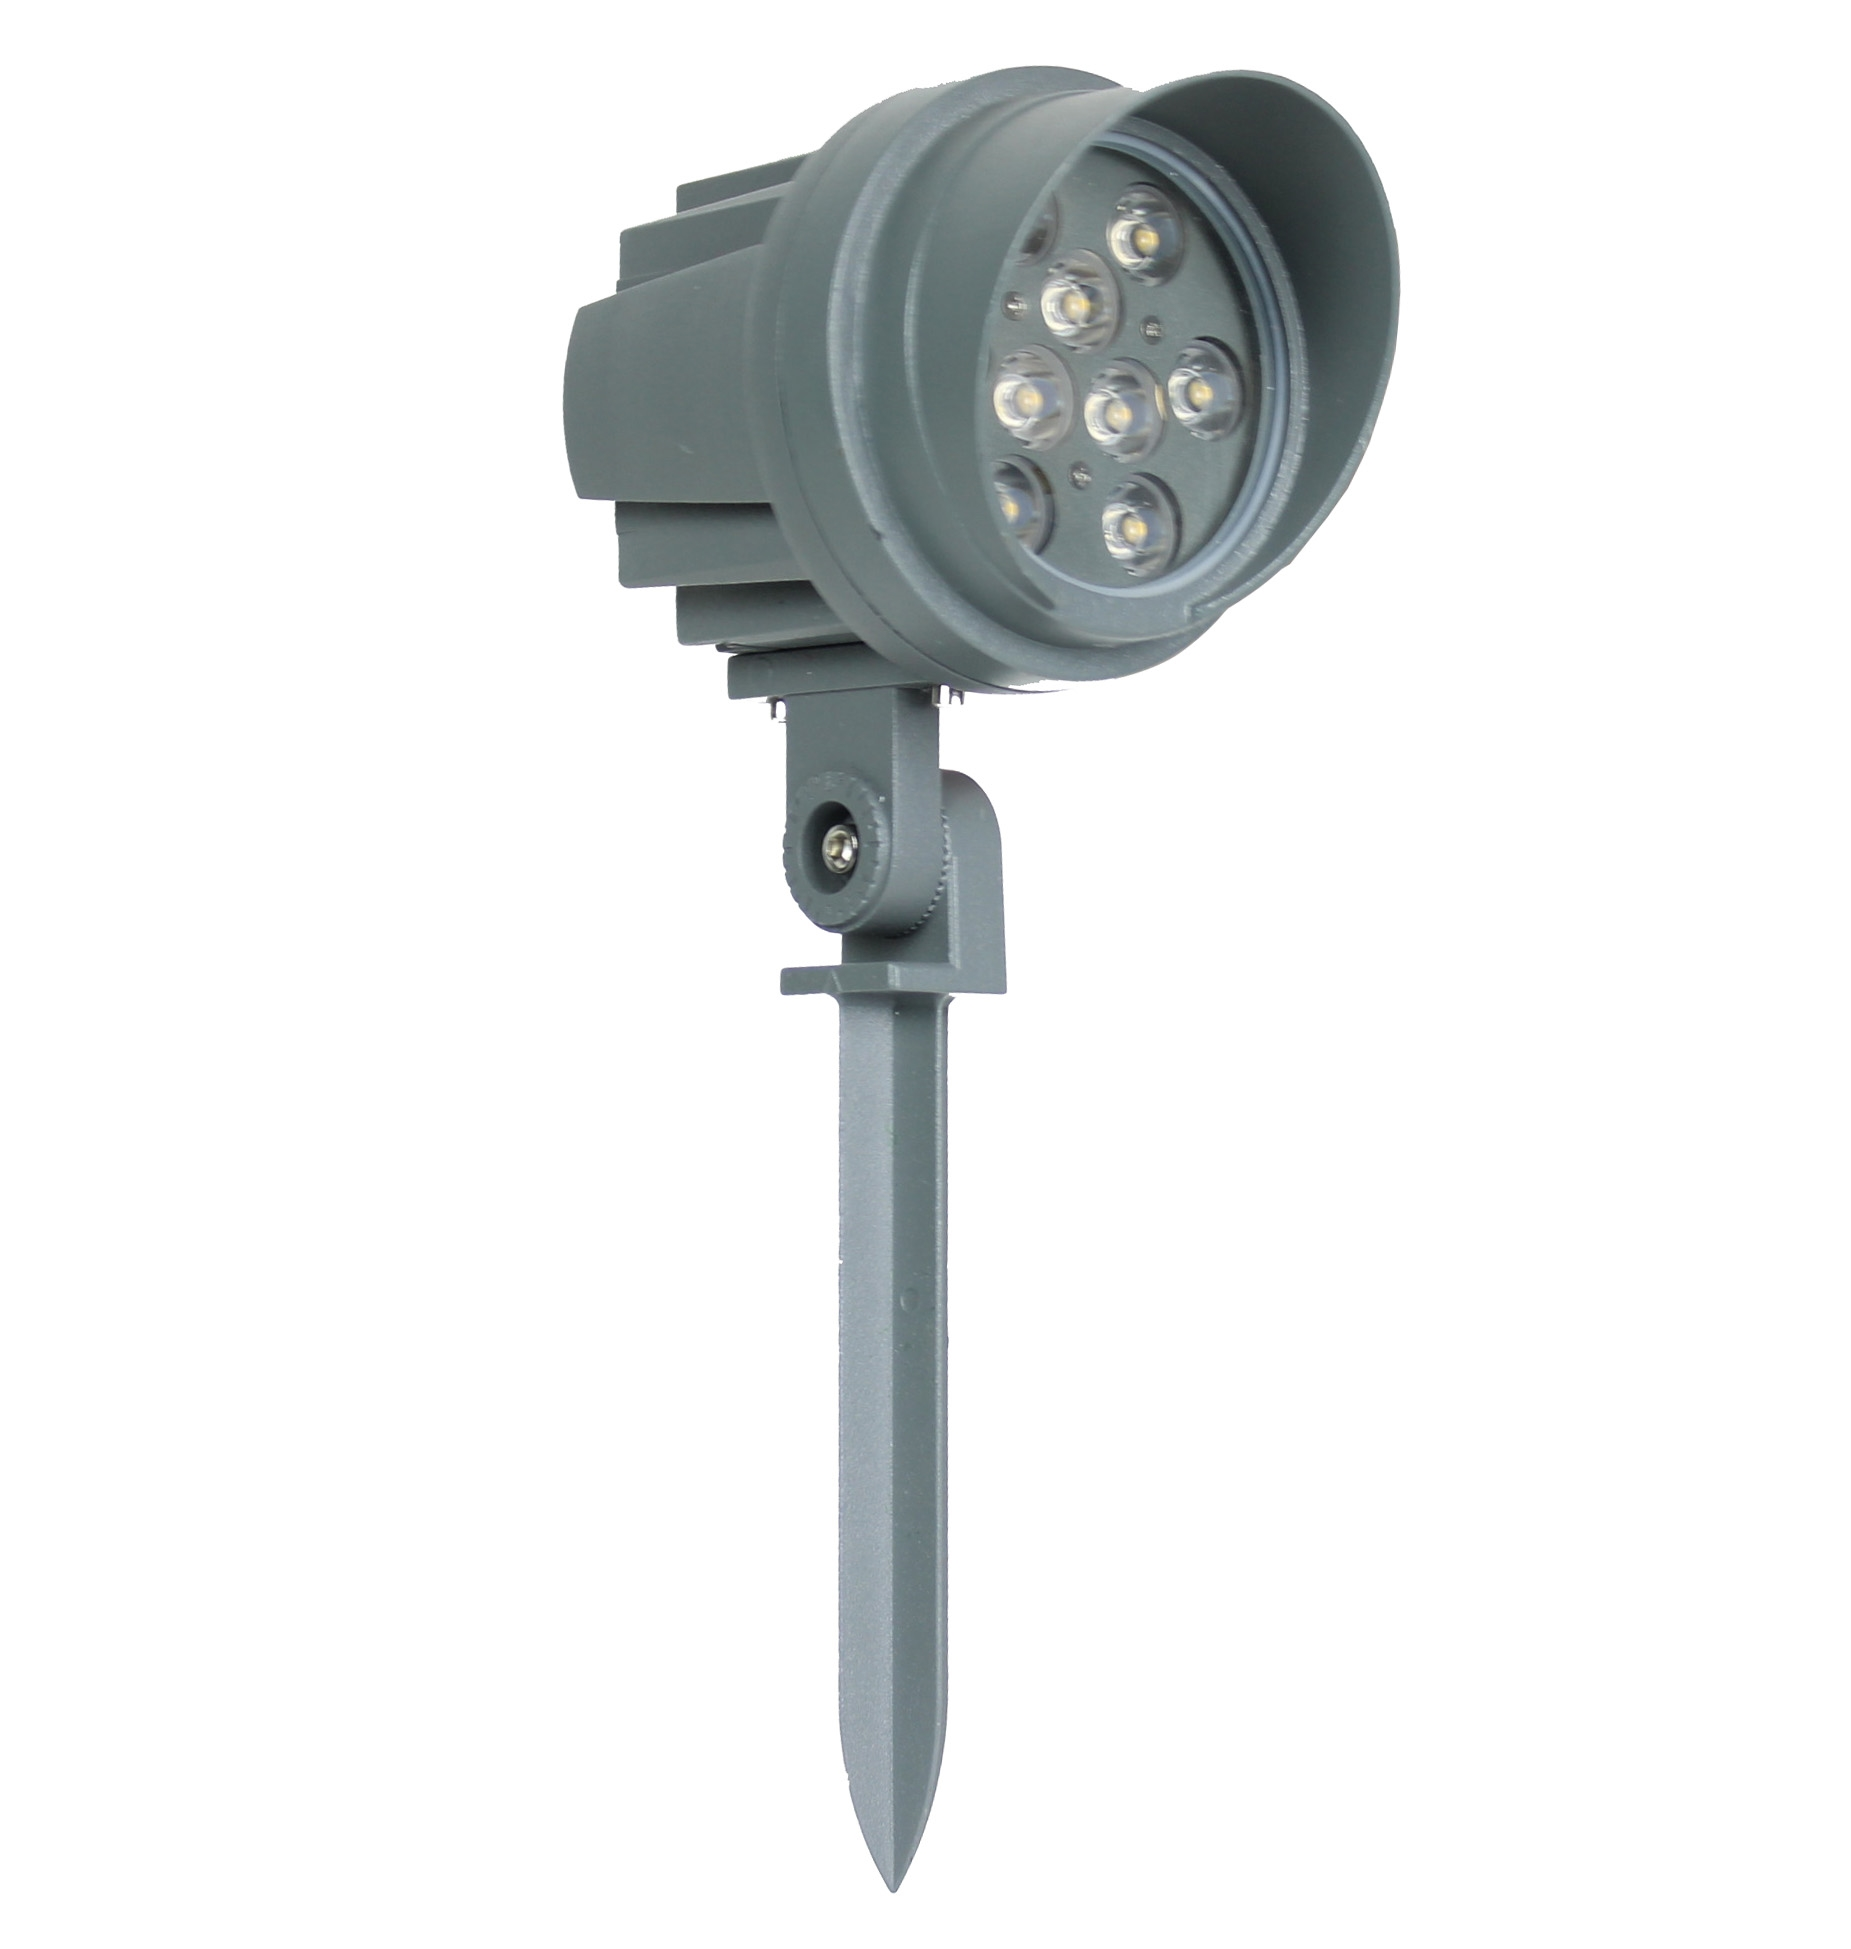 Hot Sale 18WW Die-casting IP65 Aluminum Outdoor Grey Led Lawn Light For Garden